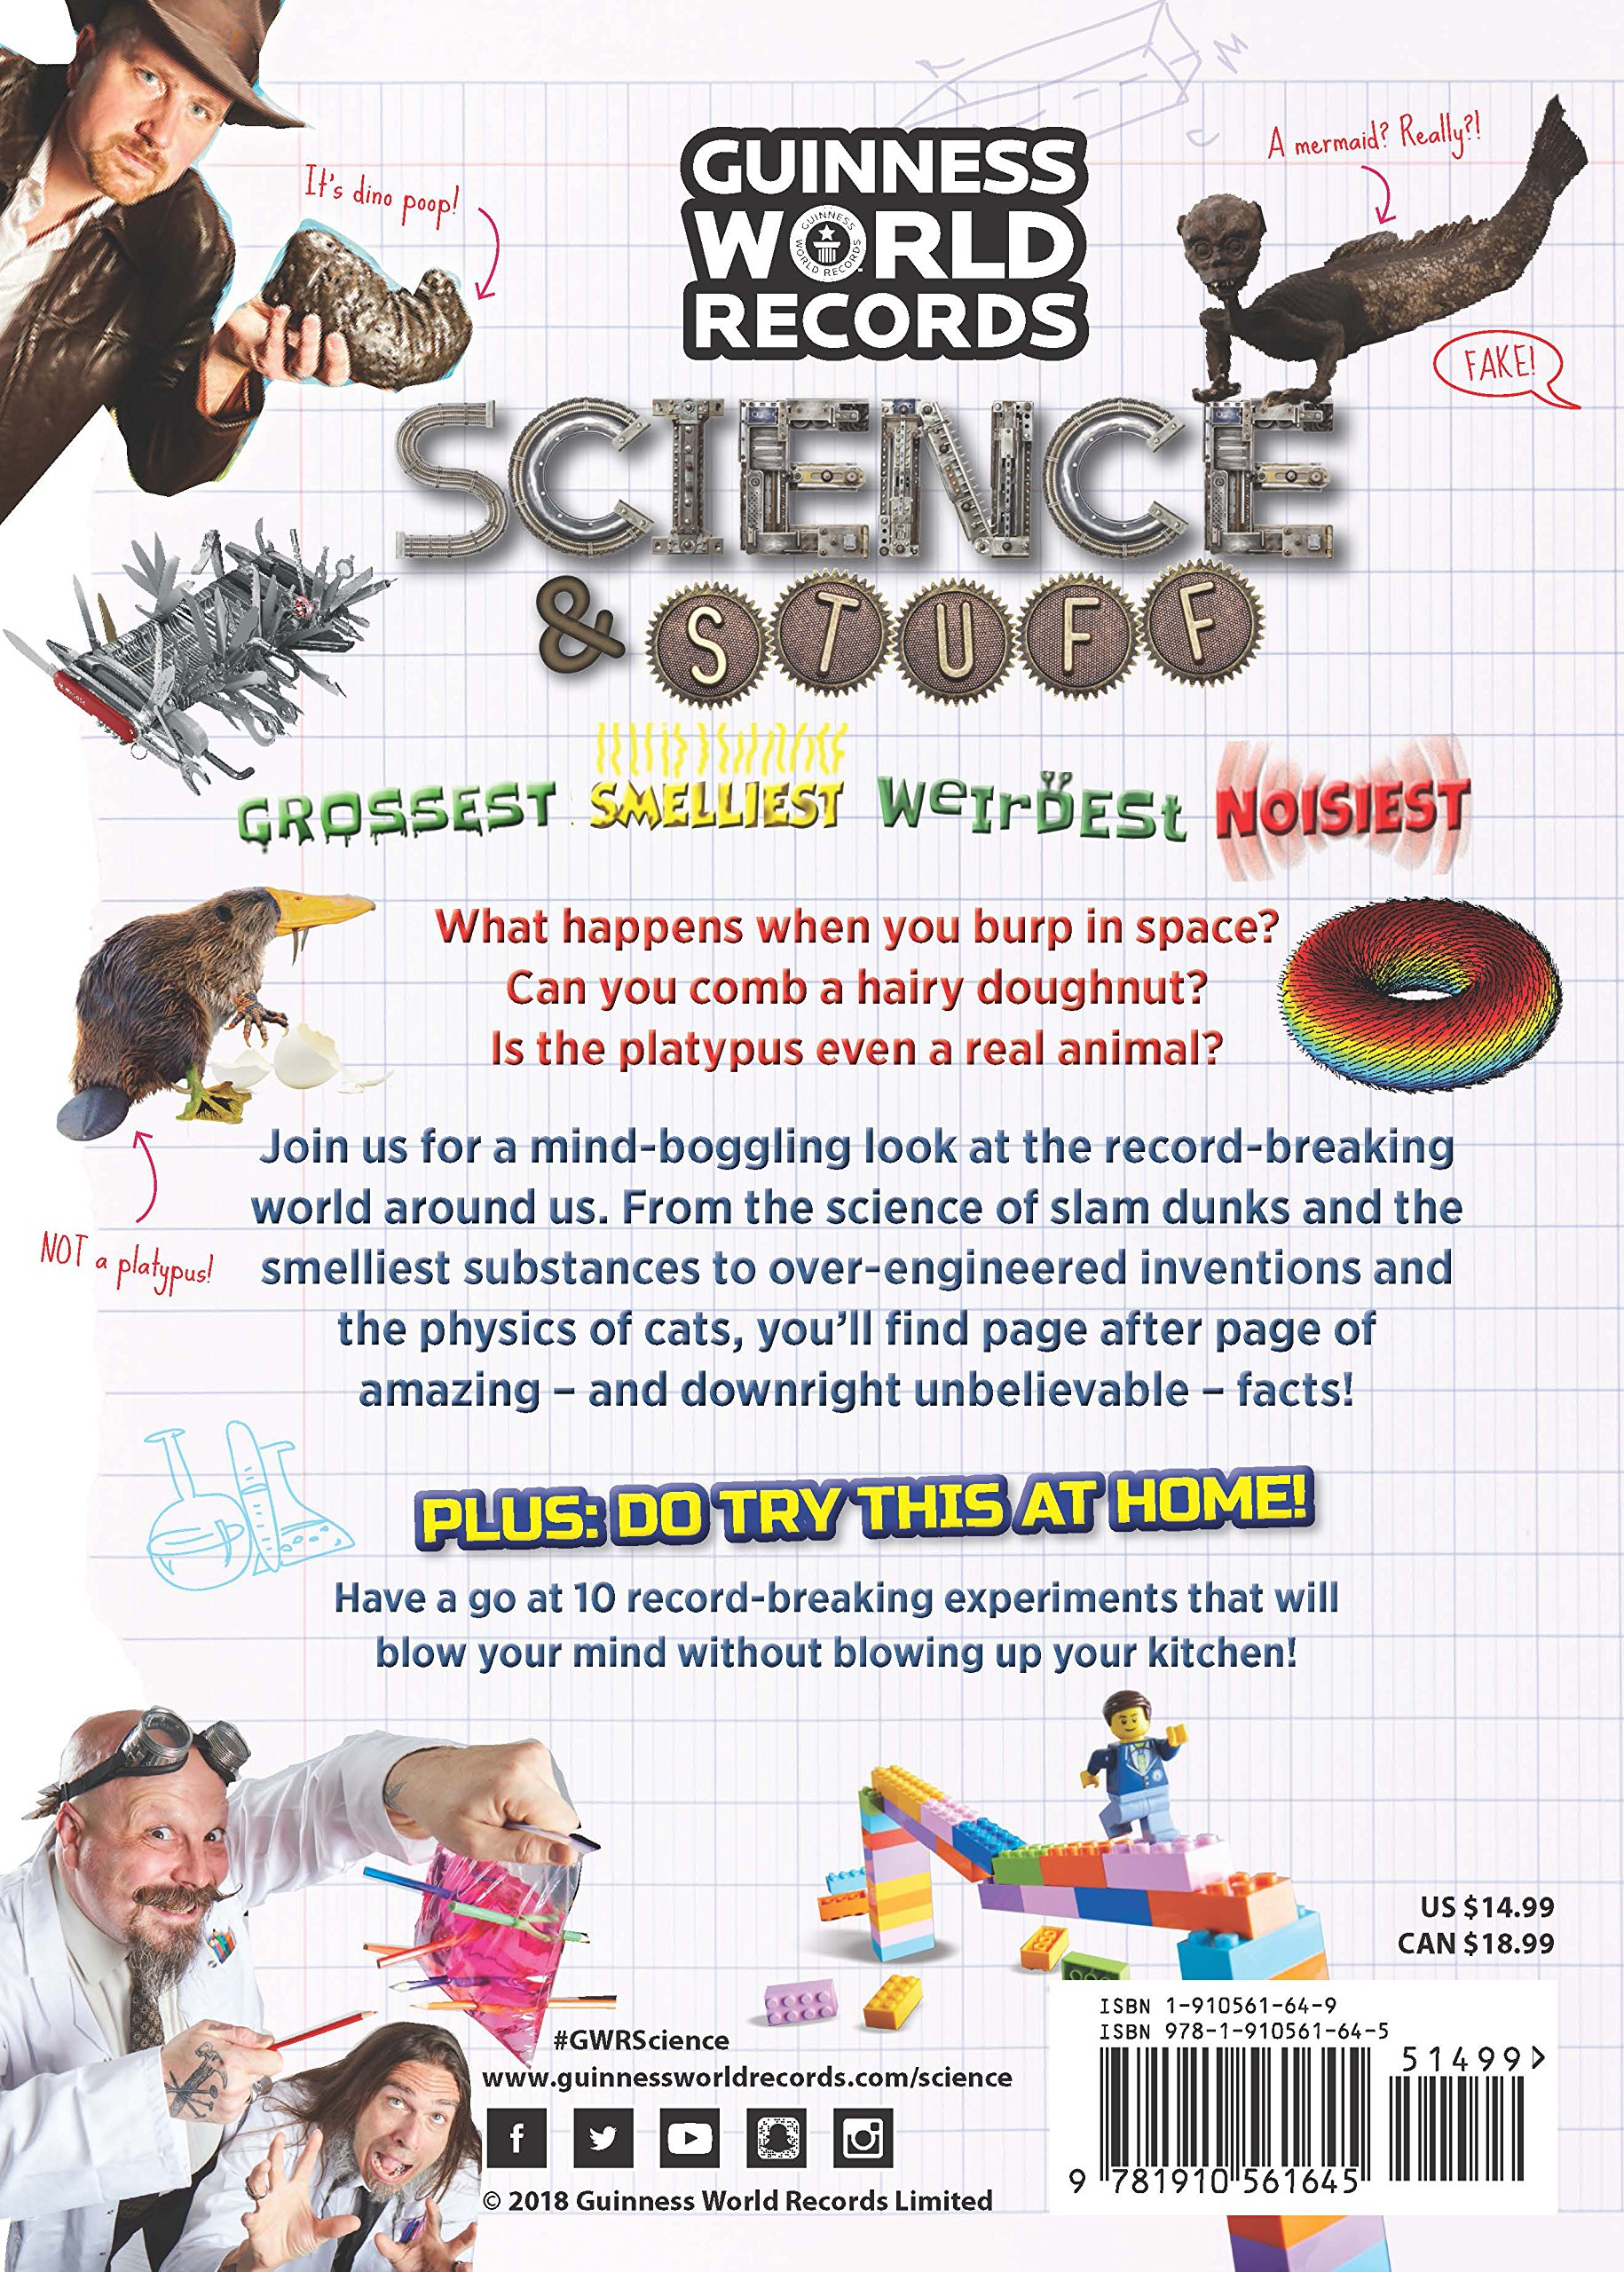 guinness world records science stuff guinness world records 9781910561645 books amazonca